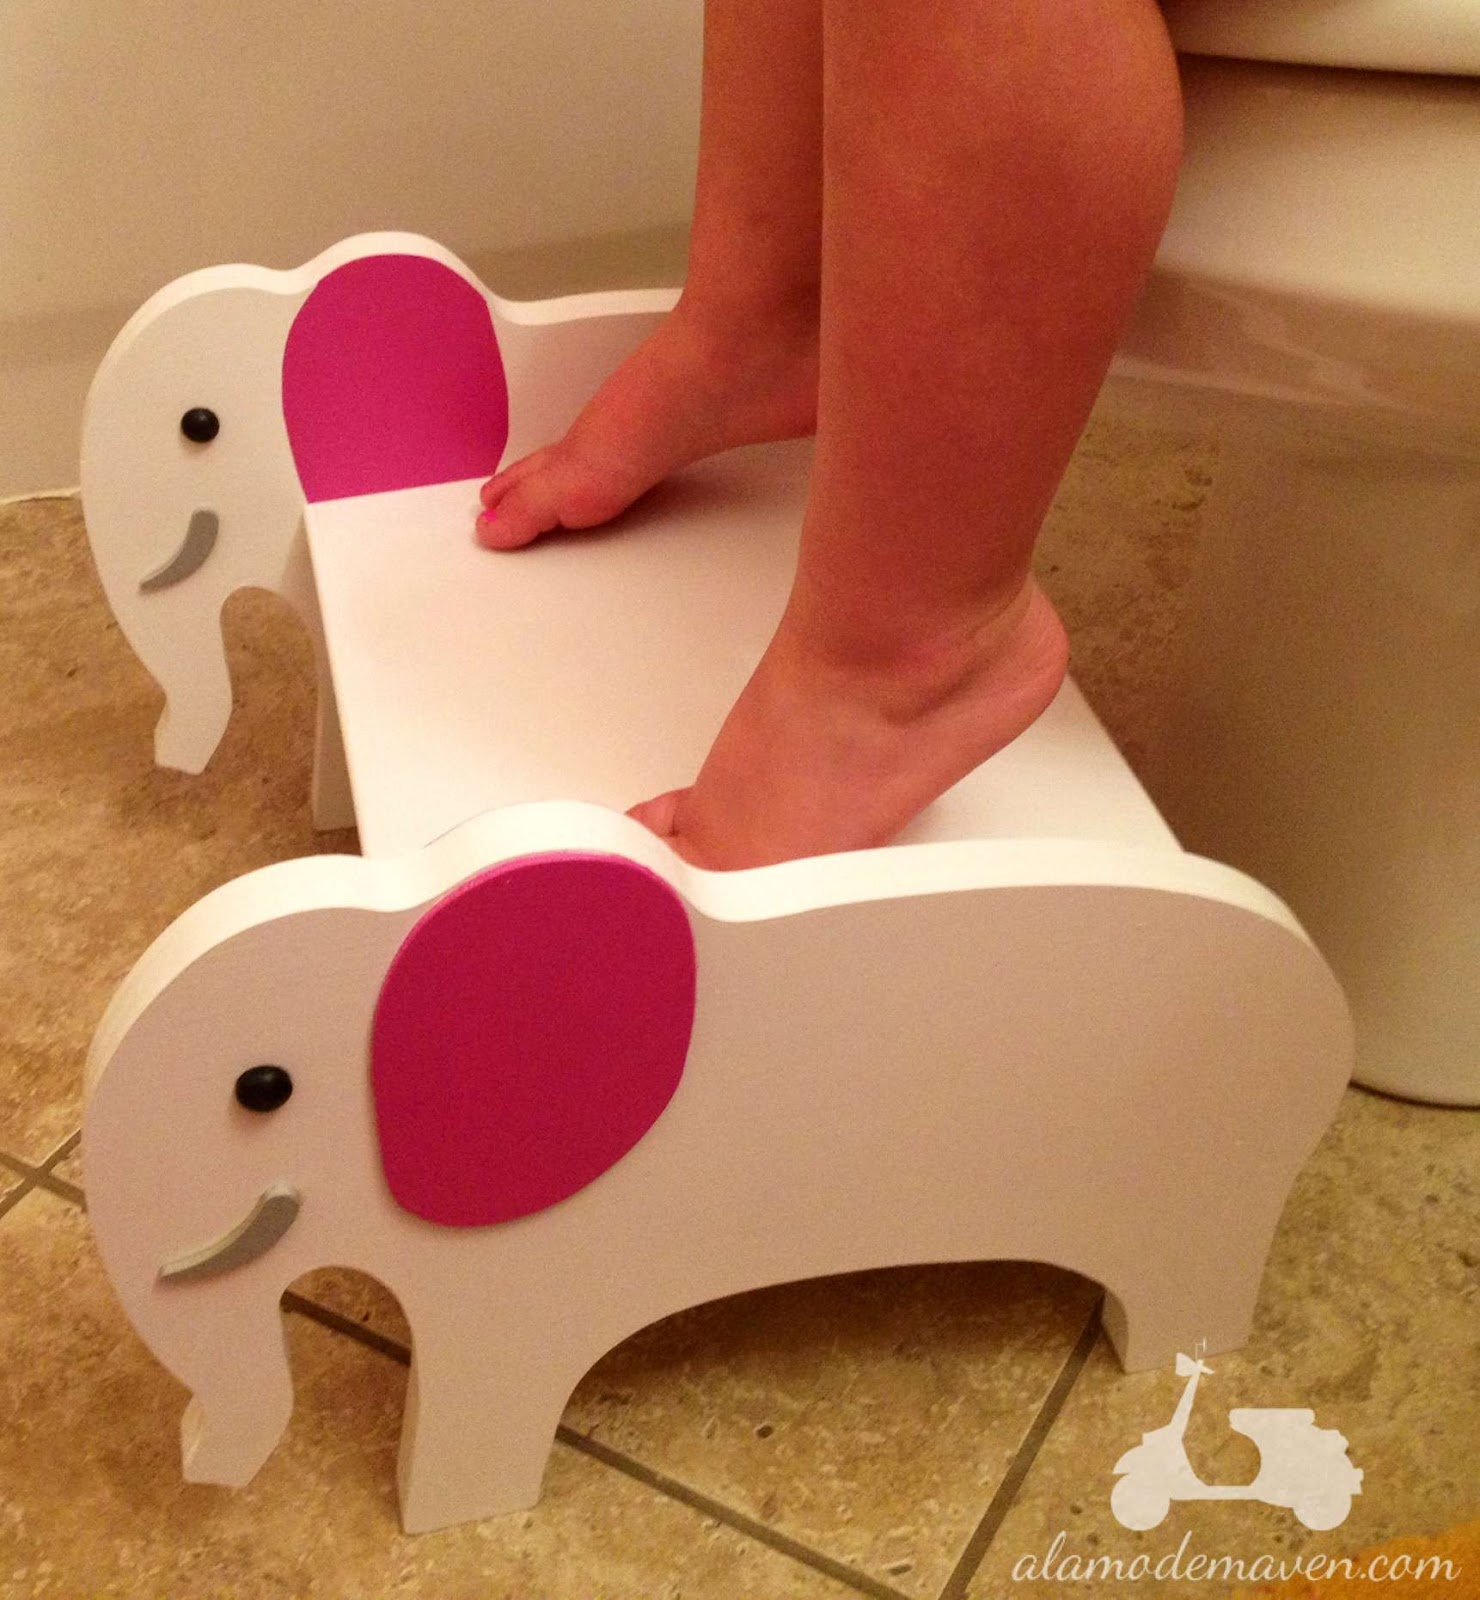 How cute is this little elephant stool we ordered for ku0027s bathroom? : children step stool - islam-shia.org